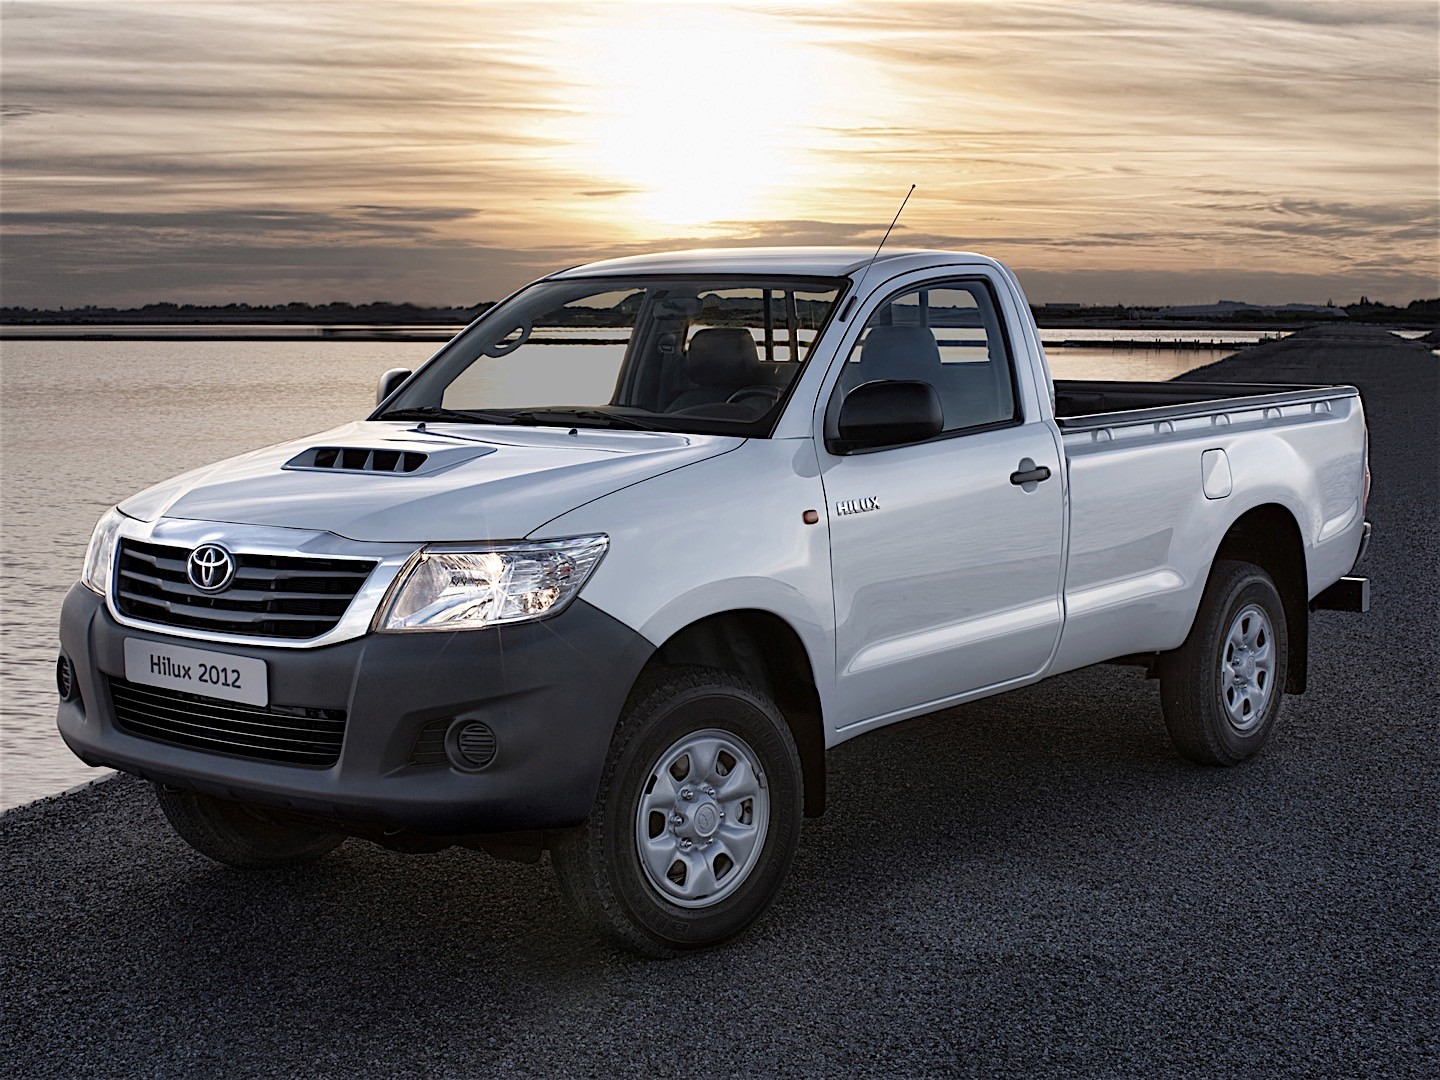 toyota hilux single cab specs - 2011, 2012, 2013, 2014, 2015